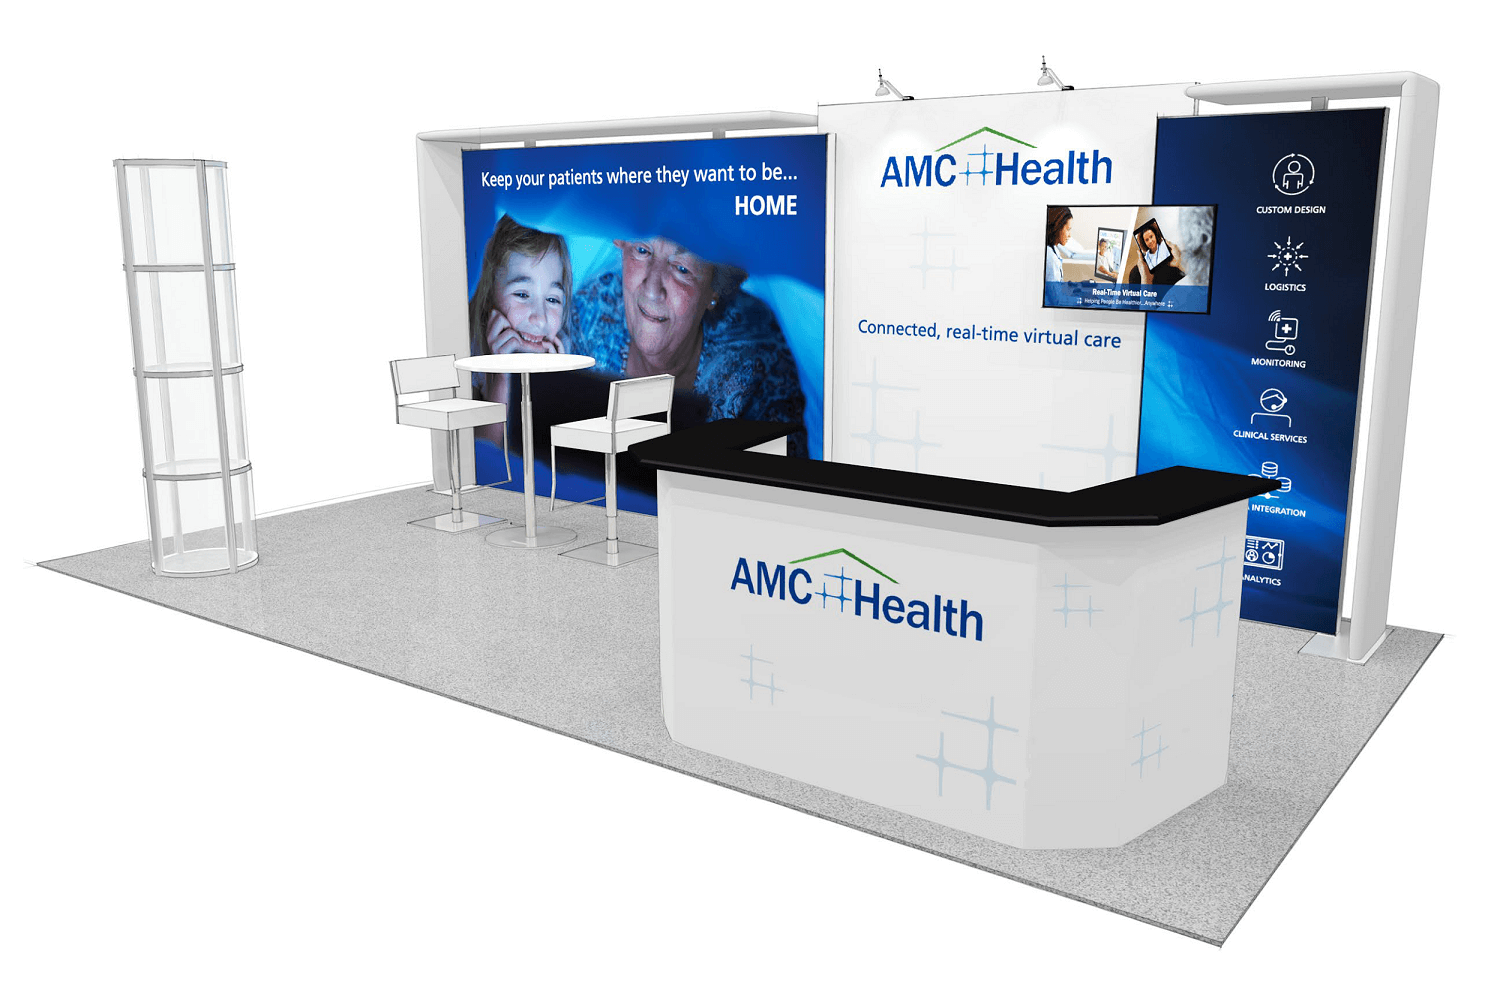 AMC Health resize min.png